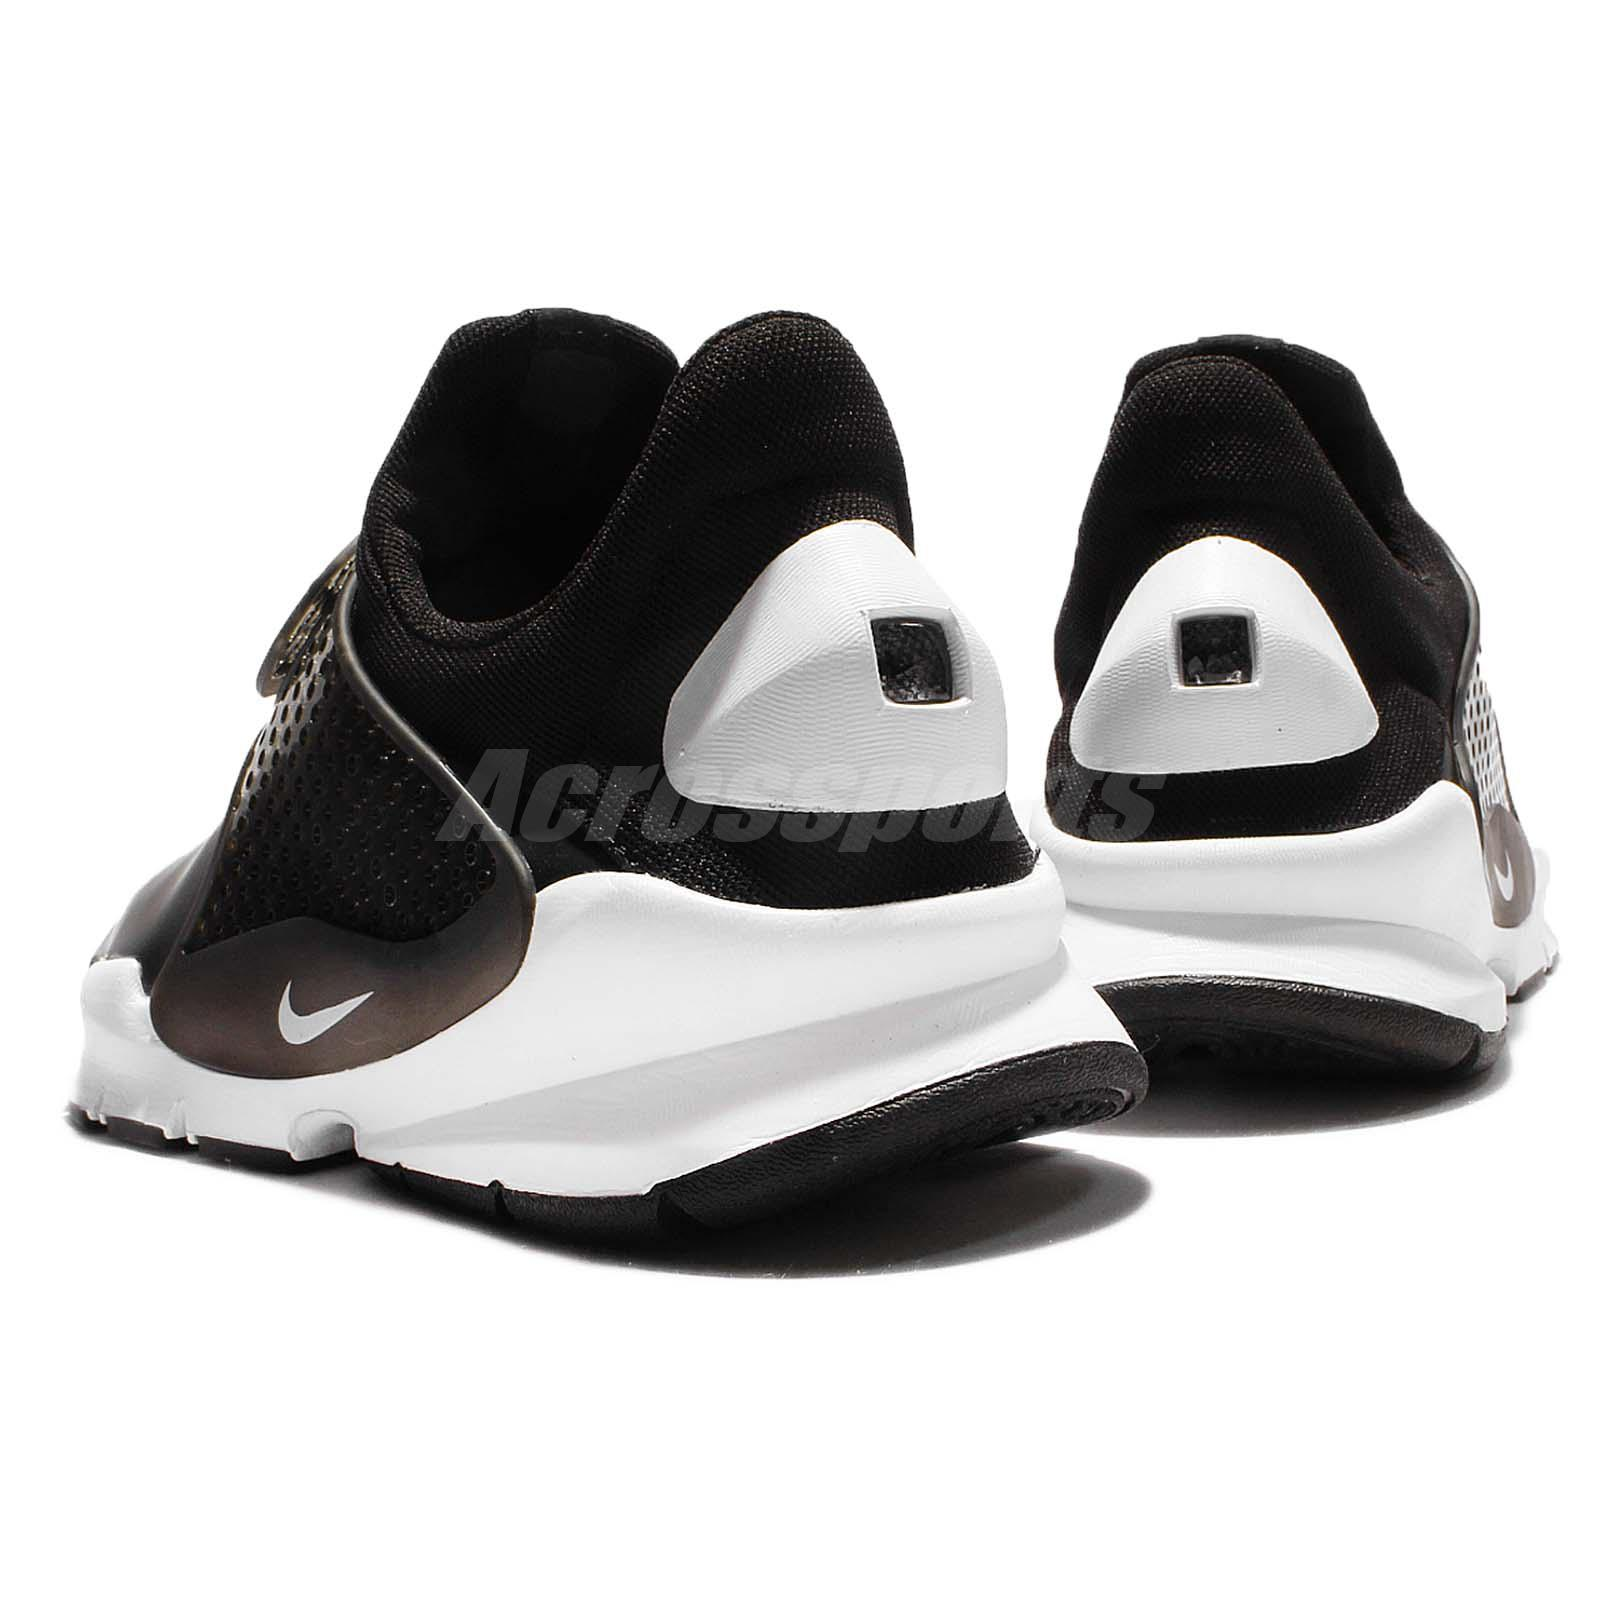 nike free sock shoes